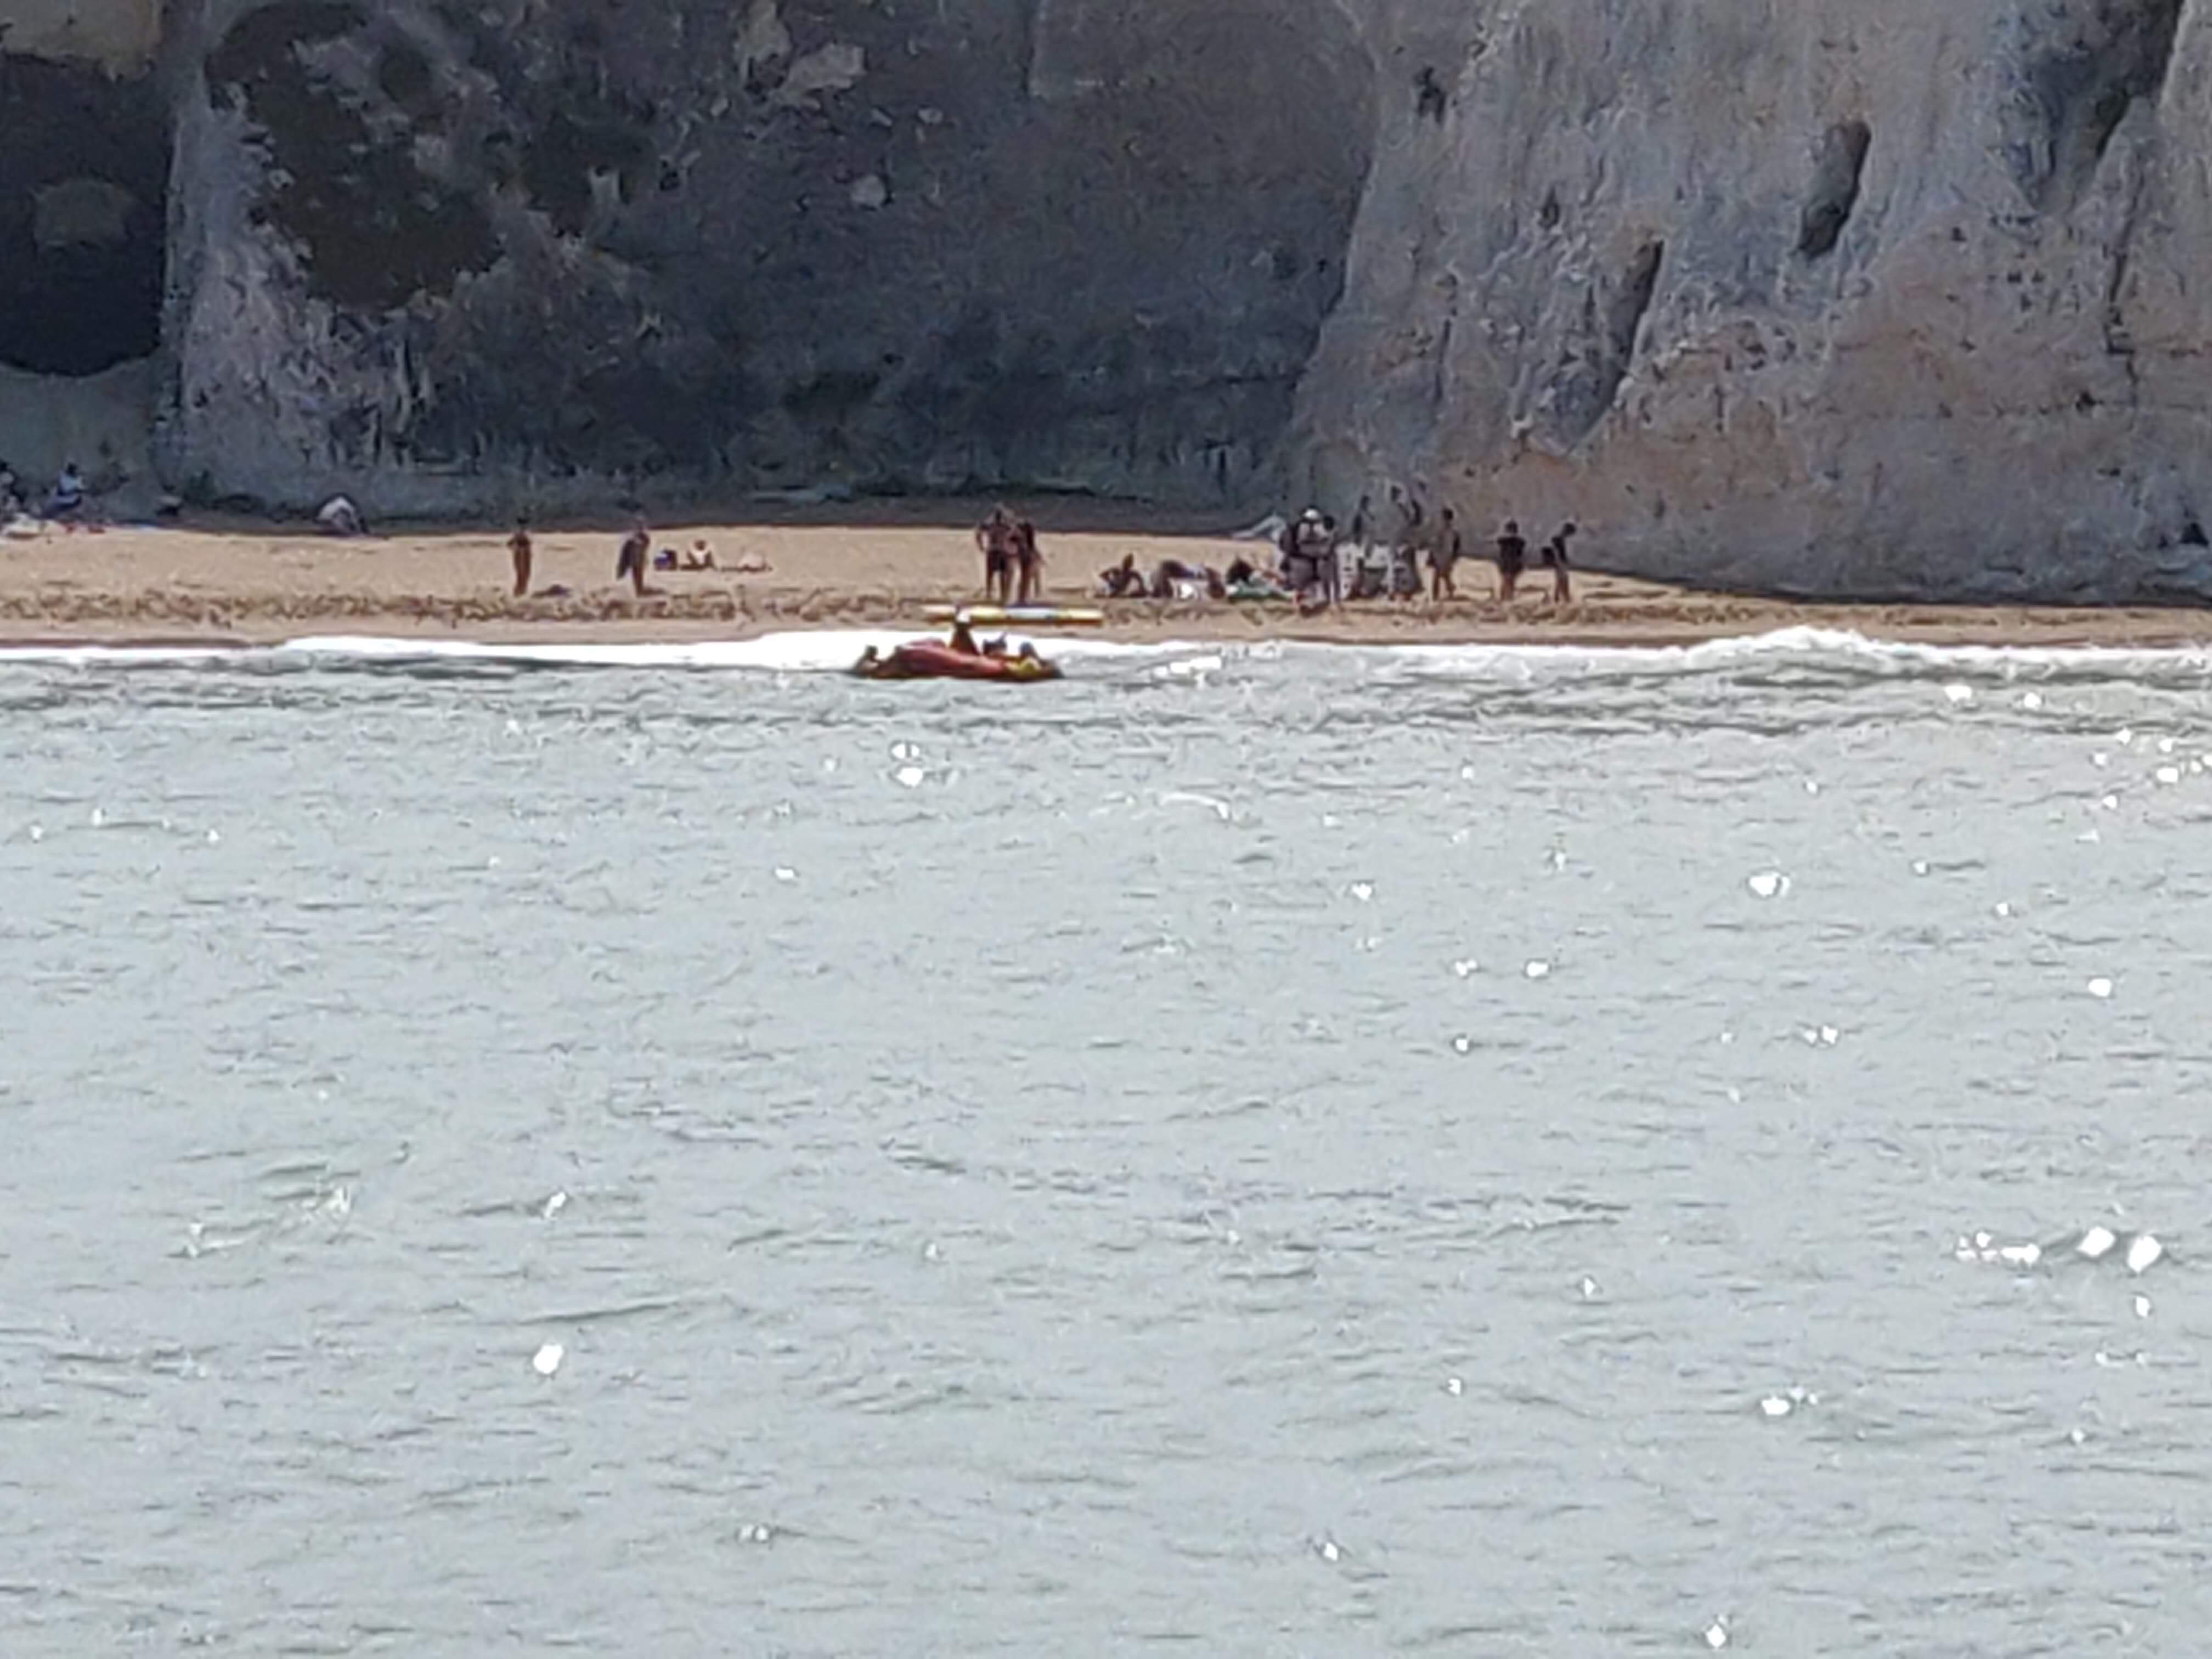 Beach-goers cut off by the tide